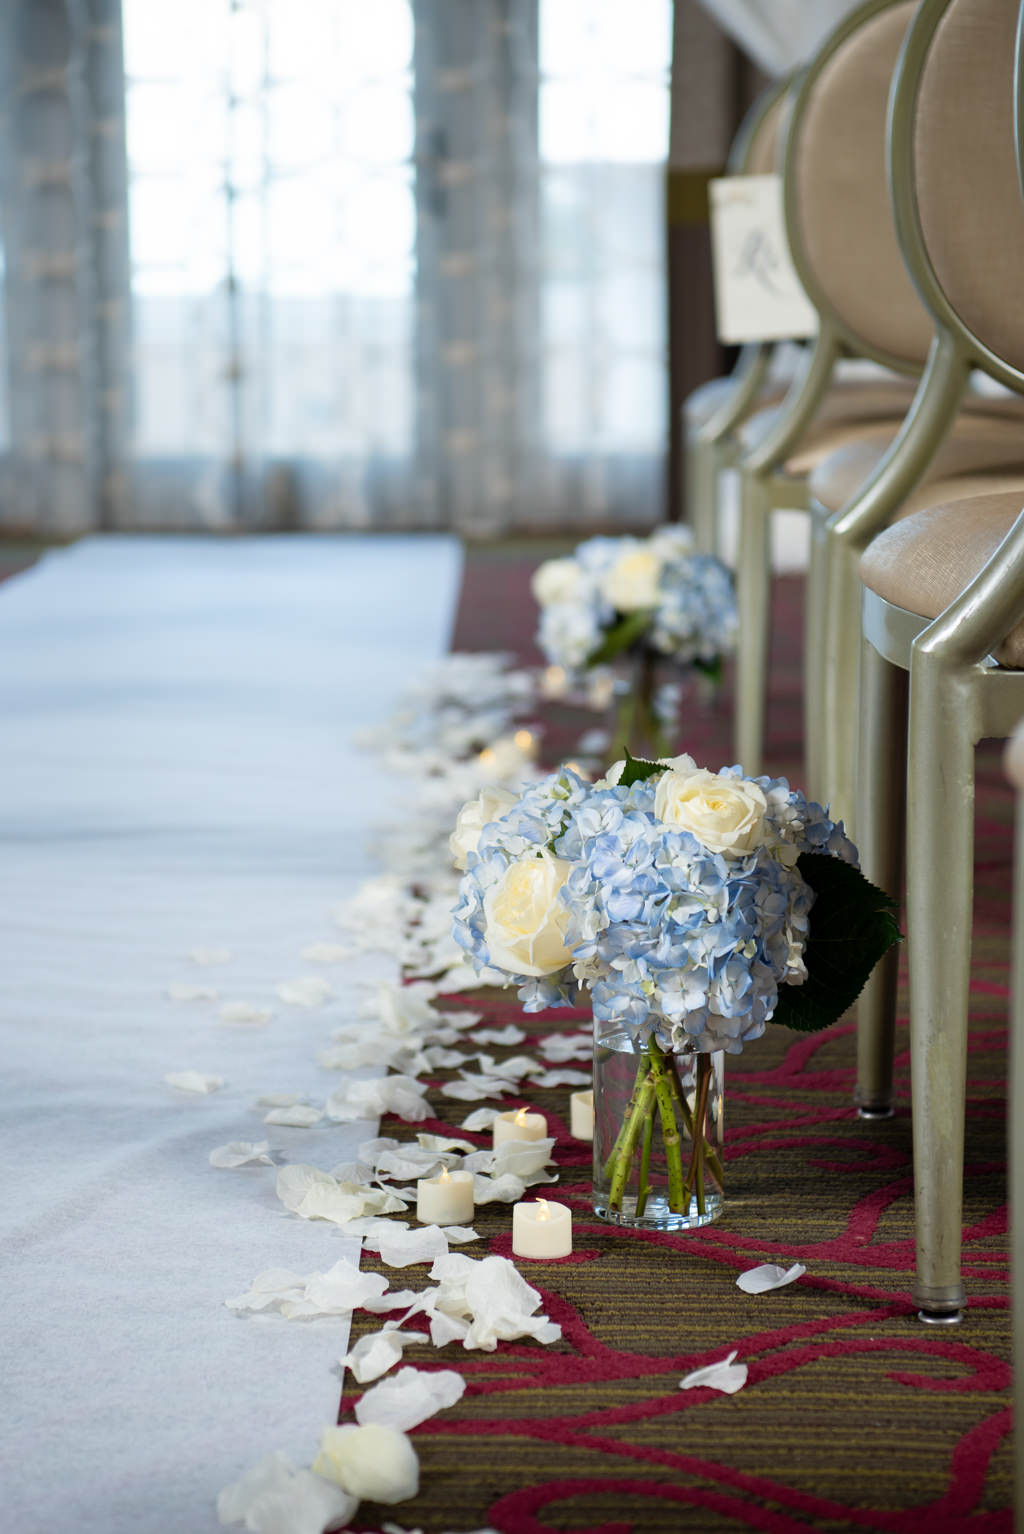 Florida Modern, Classic Wedding Ceremony Decor, Dusty Blue Hydrangeas and Ivory Roses Floral Arrangements in Vase, White Aisle Runner, Rose Petals, Candles   Tampa Bay Wedding Planner Coastal Coordinating